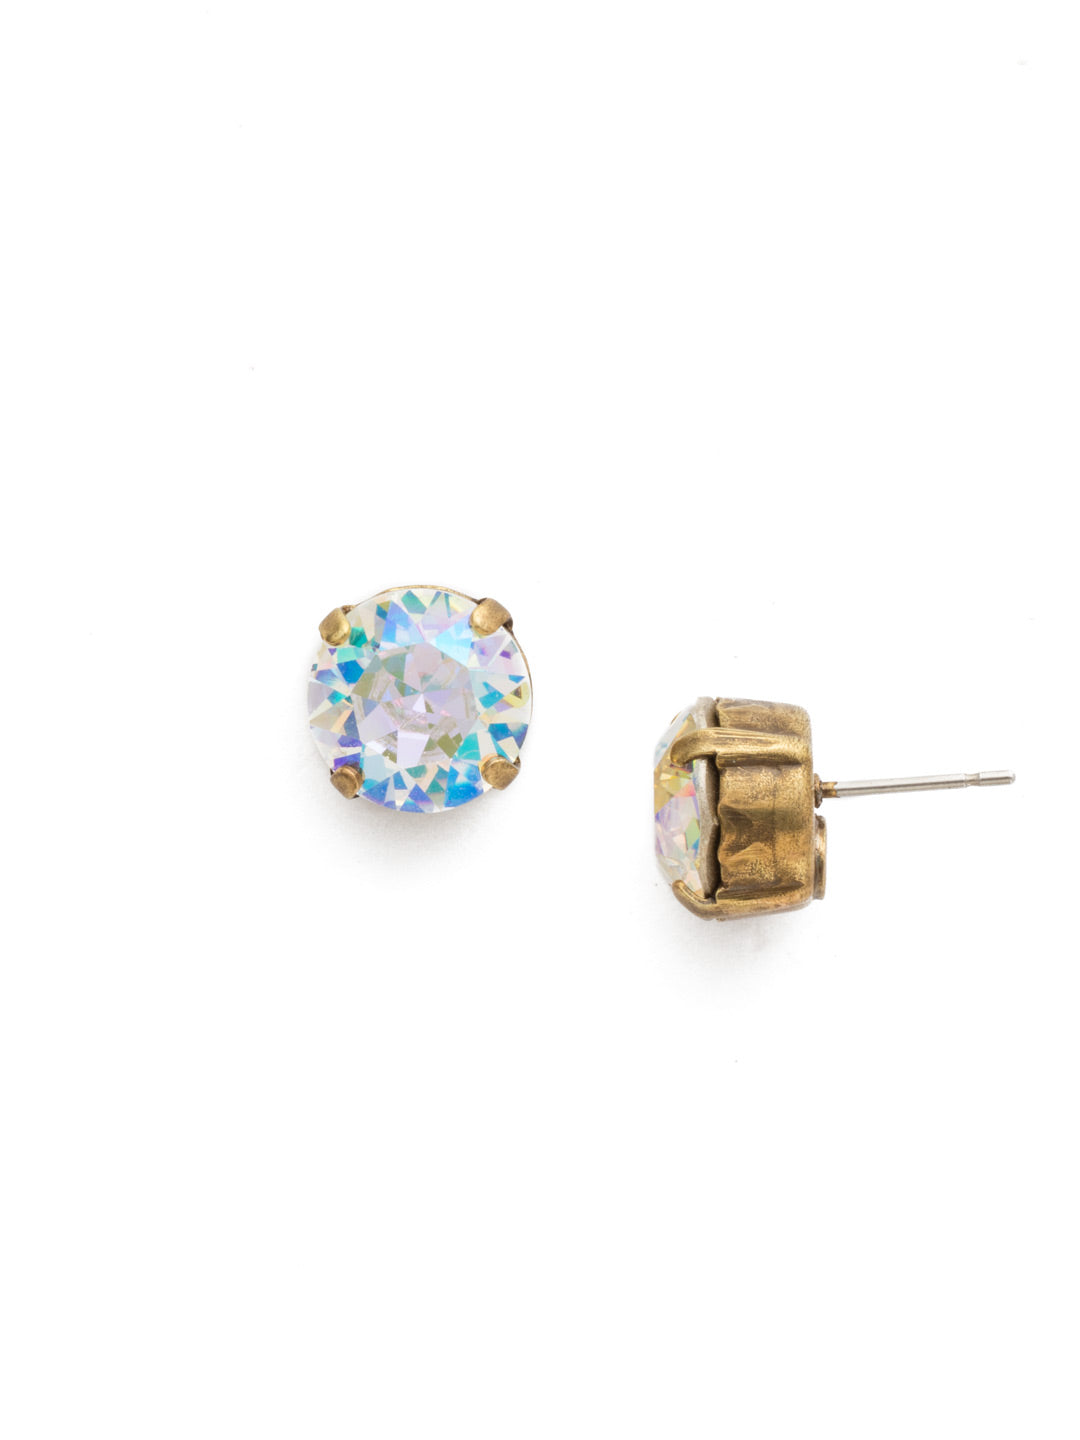 Round Crystal Stud Earrings - ECM14AGCAB